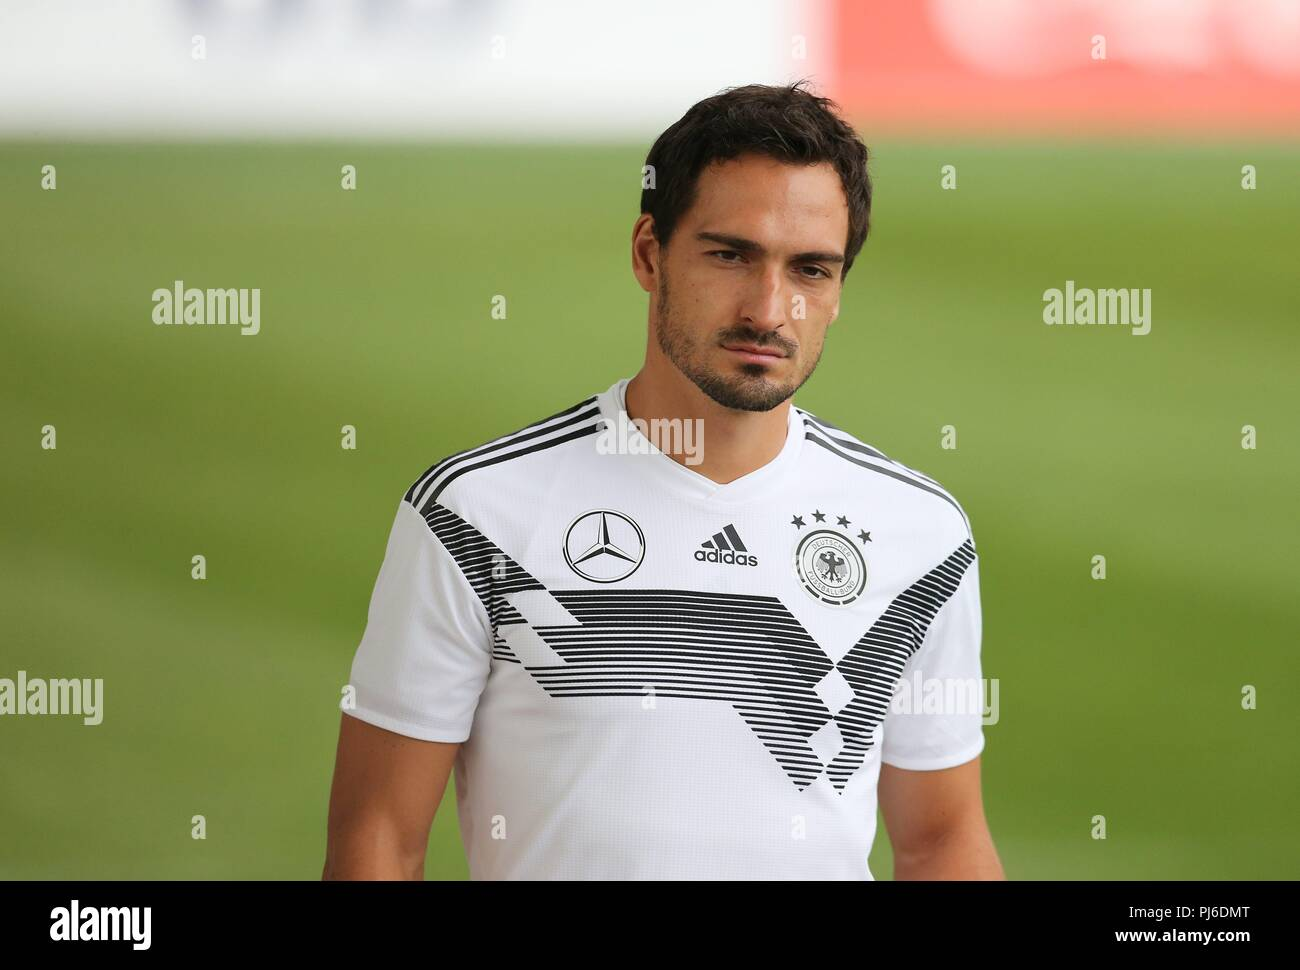 firo: 04.09.2018, Fuvuball, football, national team, training, Mats Hummels, DFB, half figure, Germany | usage worldwide - Stock Image